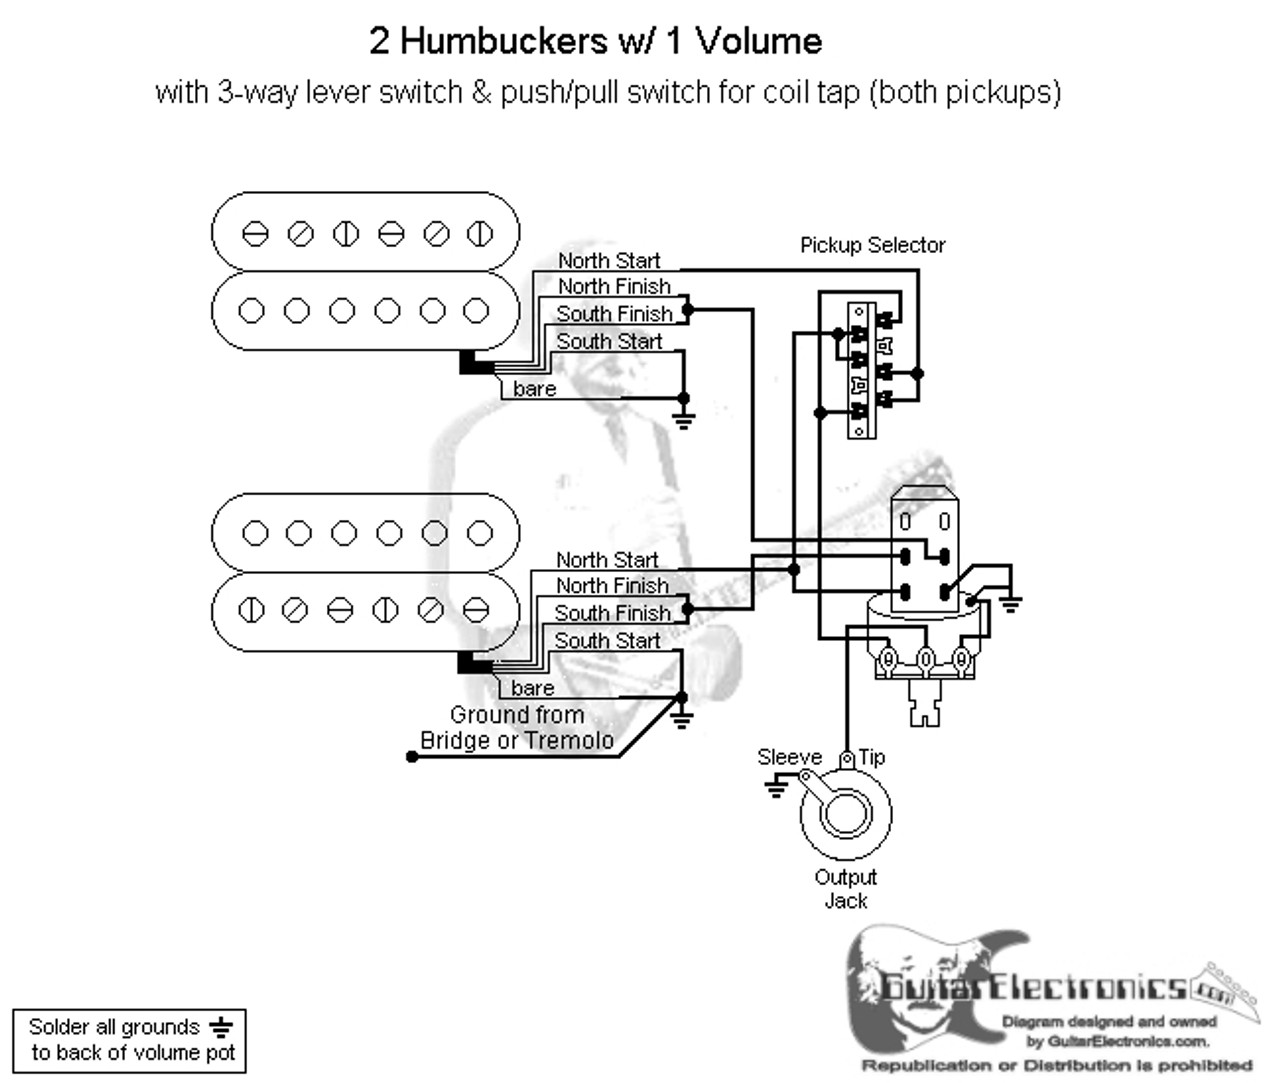 pushpull coil tap wiring diagram 2 humbuckers 3 way lever switch 1 [ 1280 x 1083 Pixel ]